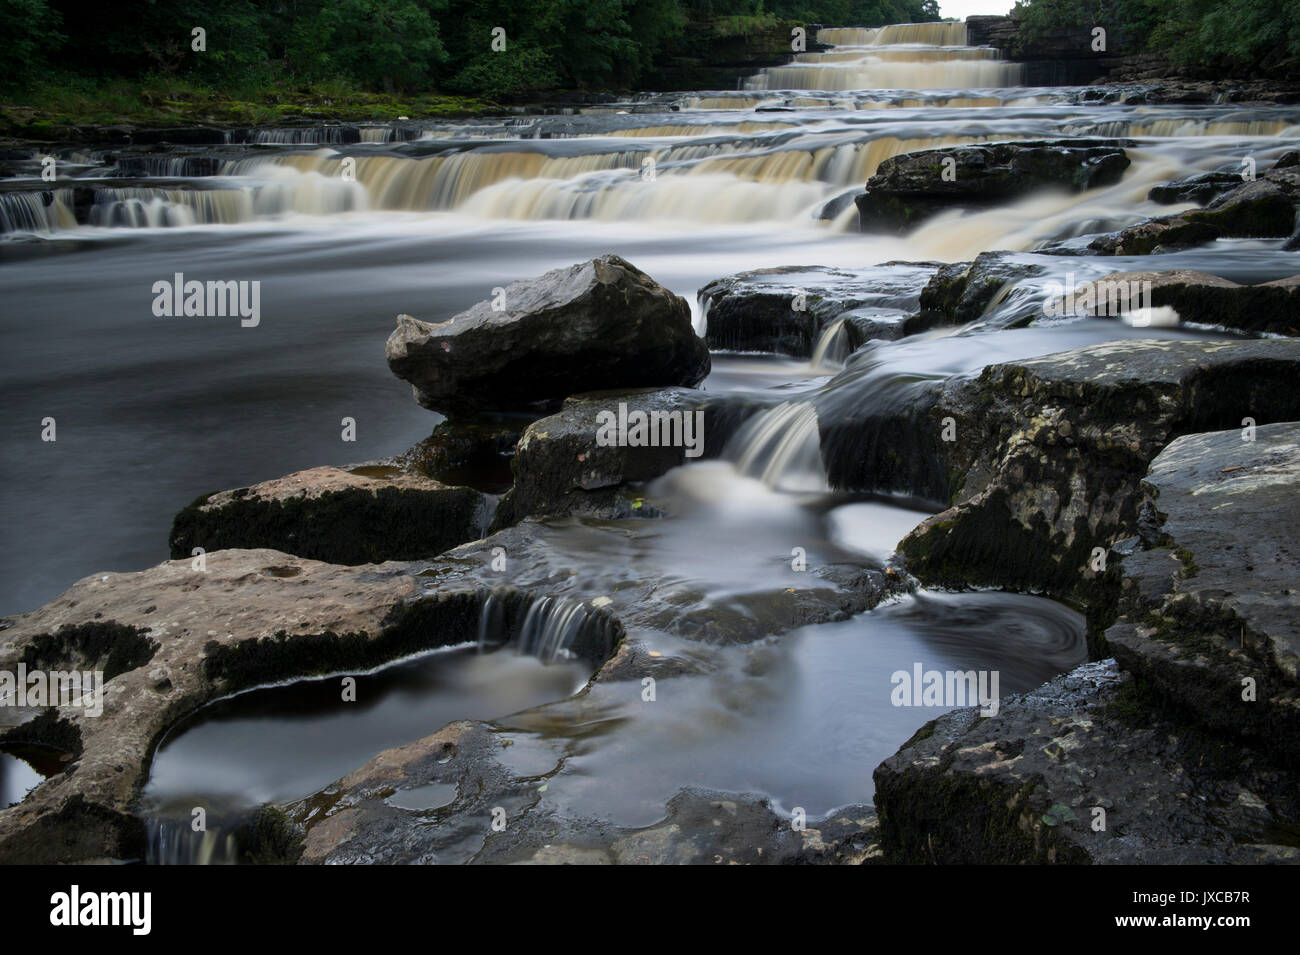 The Famous Aysgarth Falls Waterfall (Lower Falls) near Hawes in The Yorkshire Dales National Park, North Yorkshire, - Stock Image